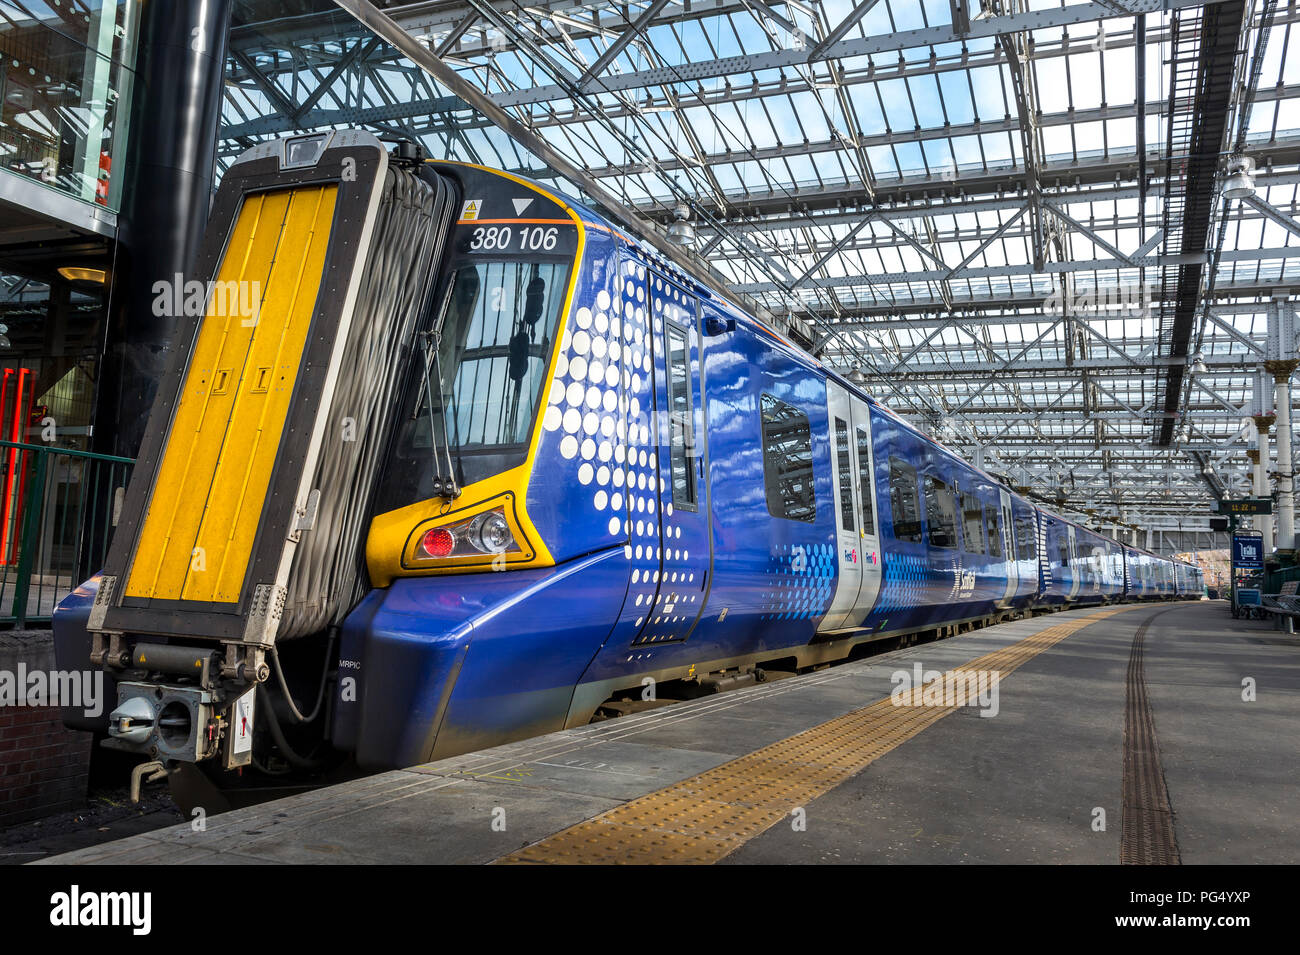 ScotRail Class 380 Desiro passenger train waiting at a station in the UK. Stock Photo